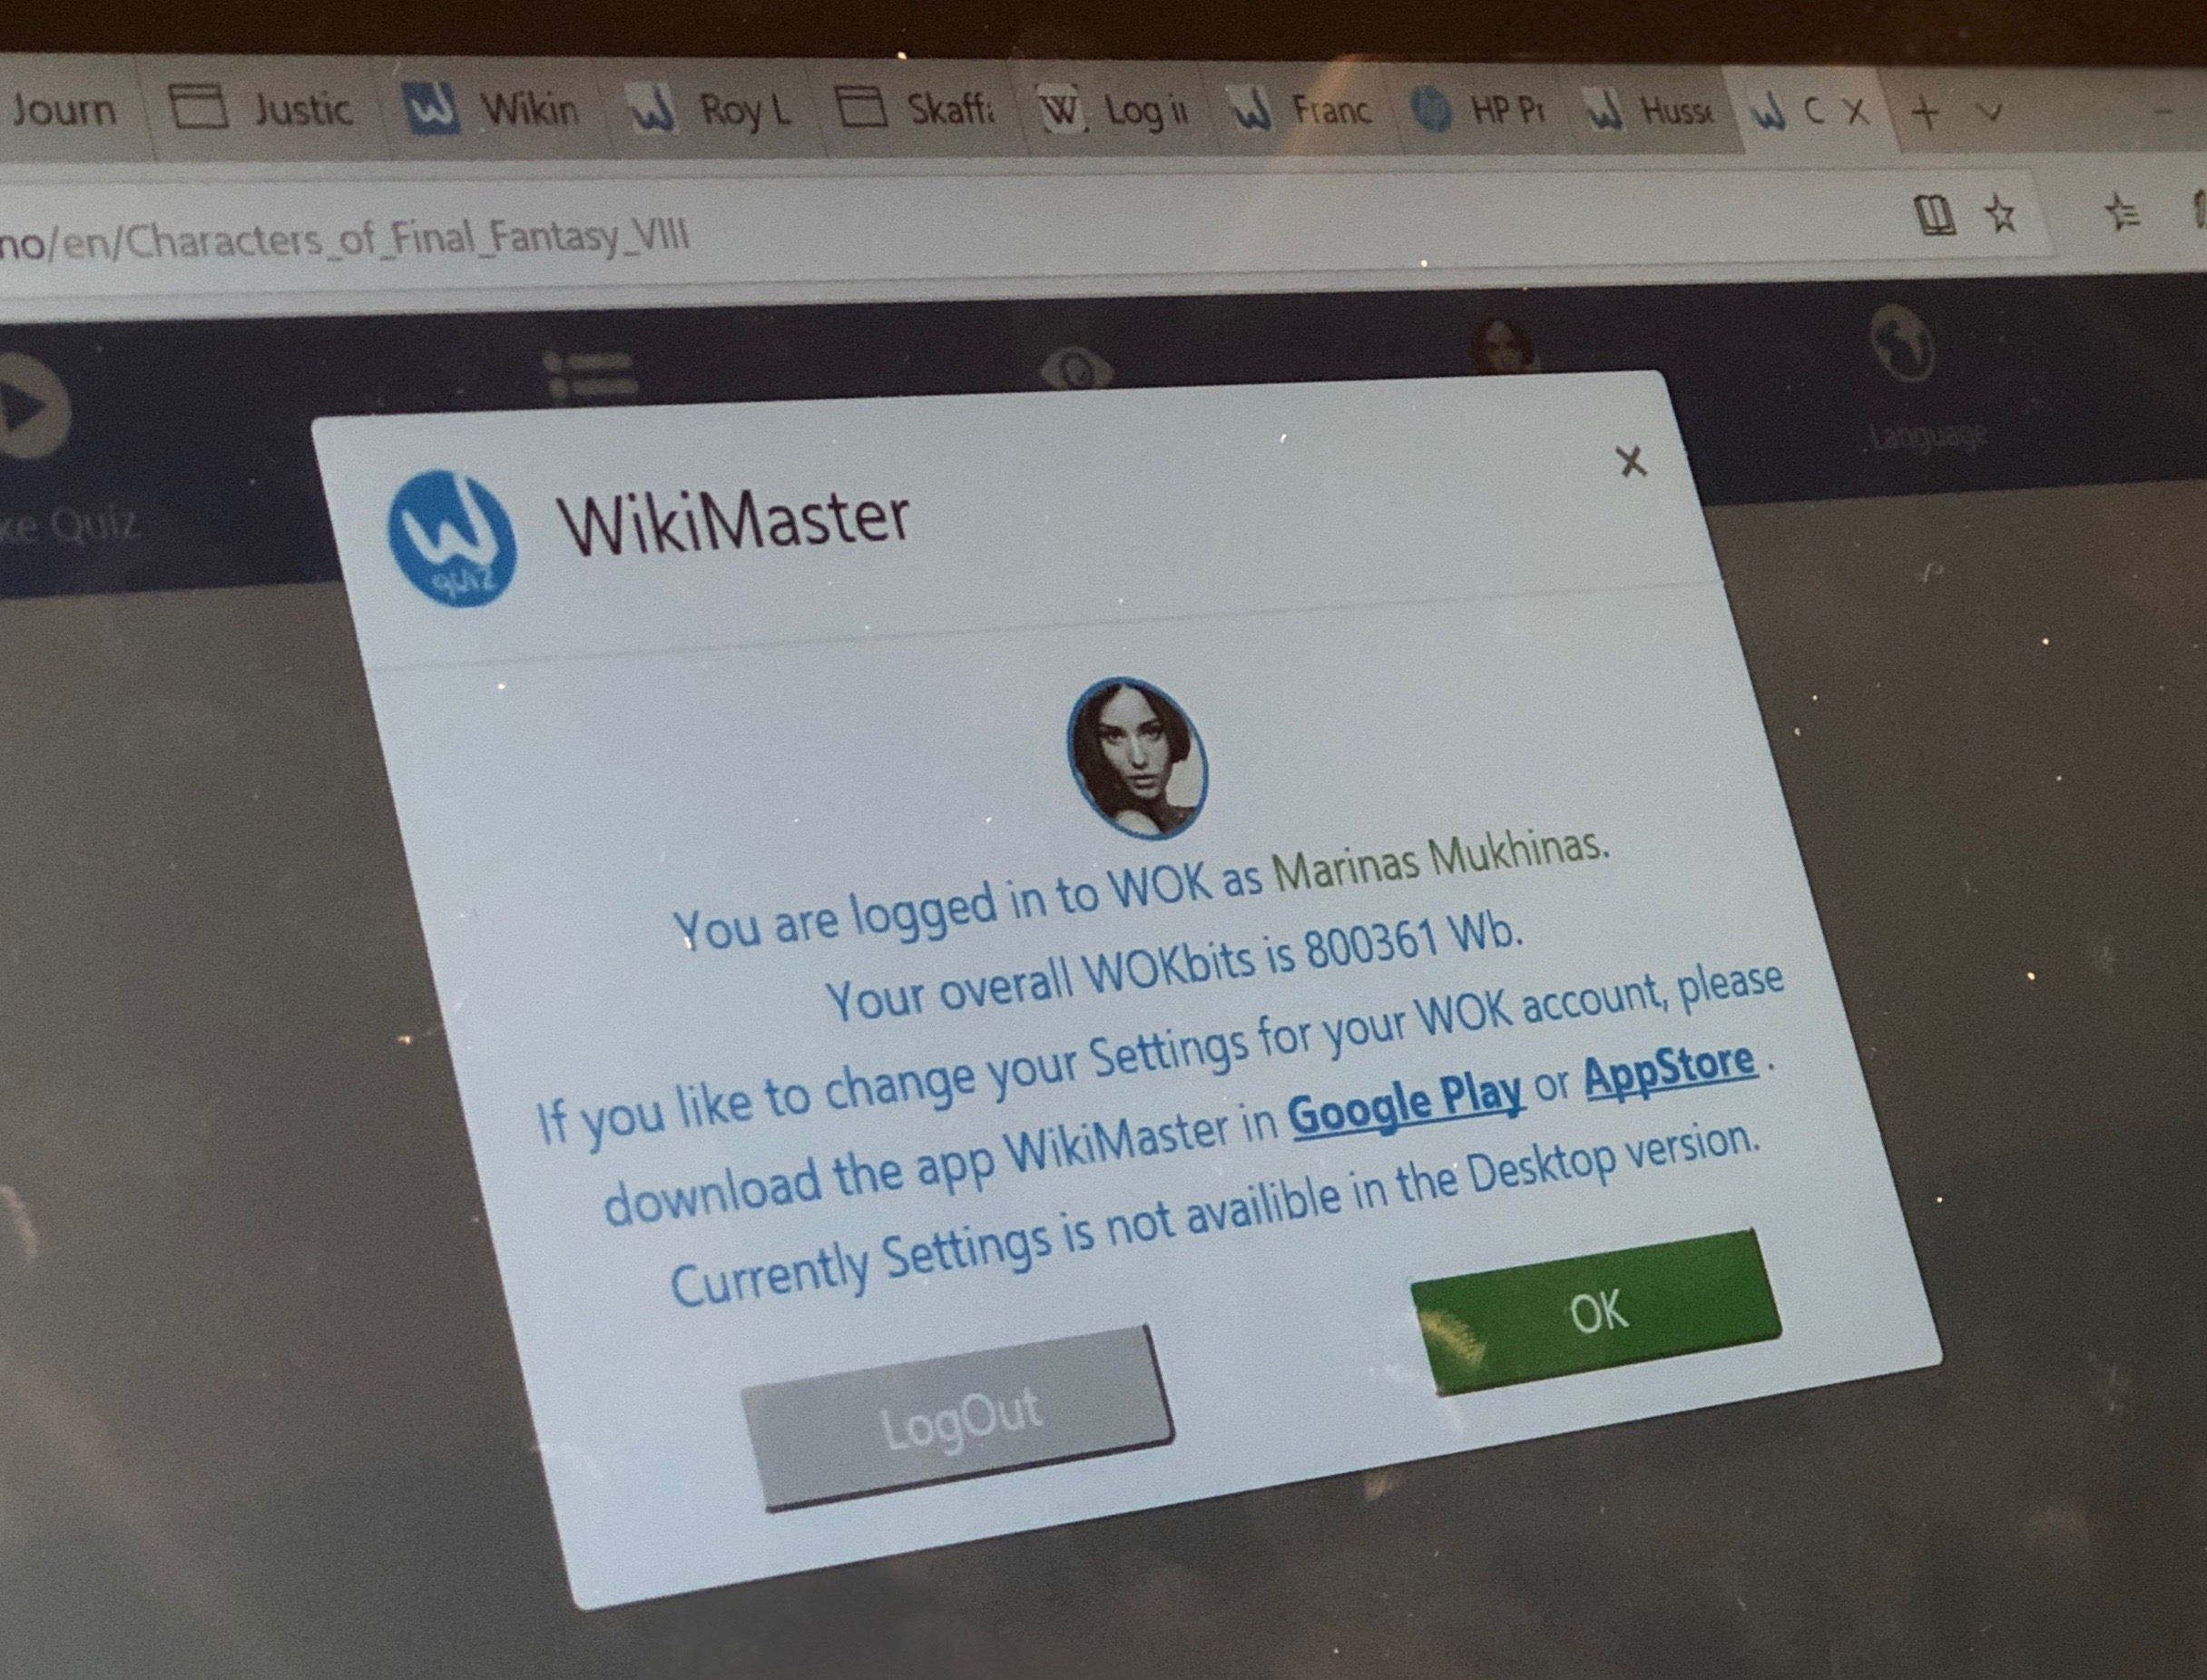 Wikimaster - WikiMaster softlaunches web version with quiz